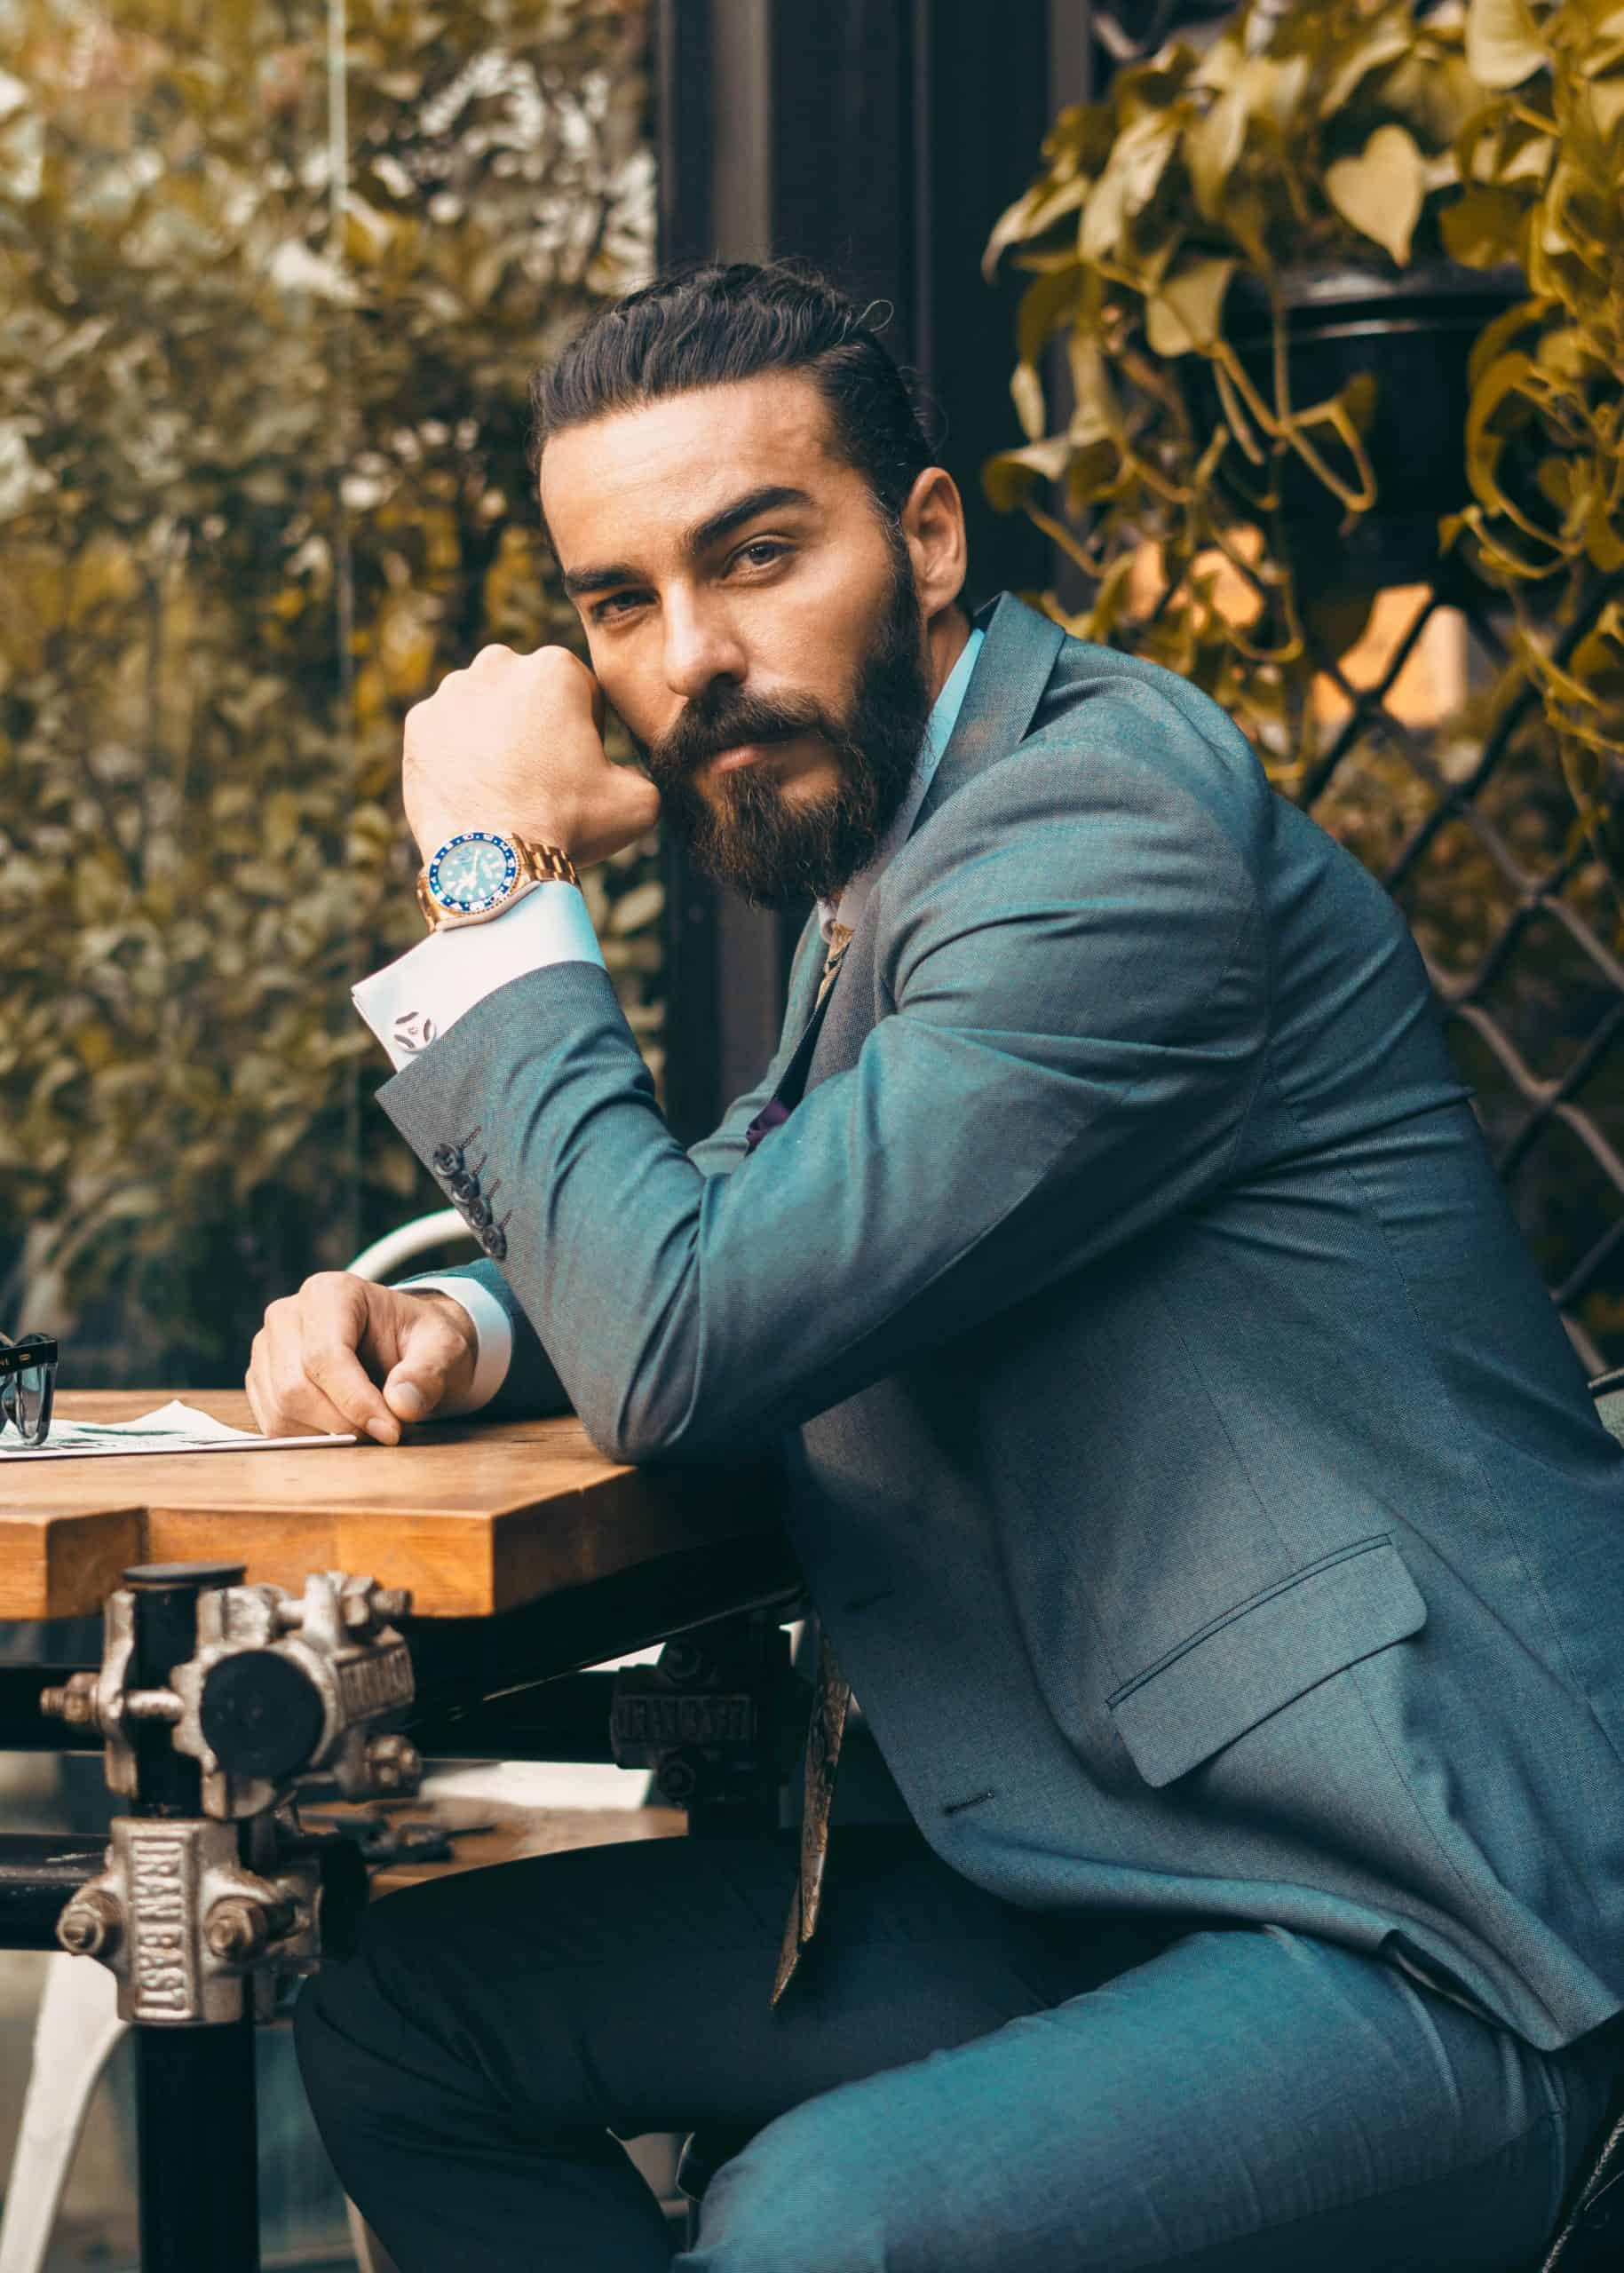 bearded man in suit displaying rolex